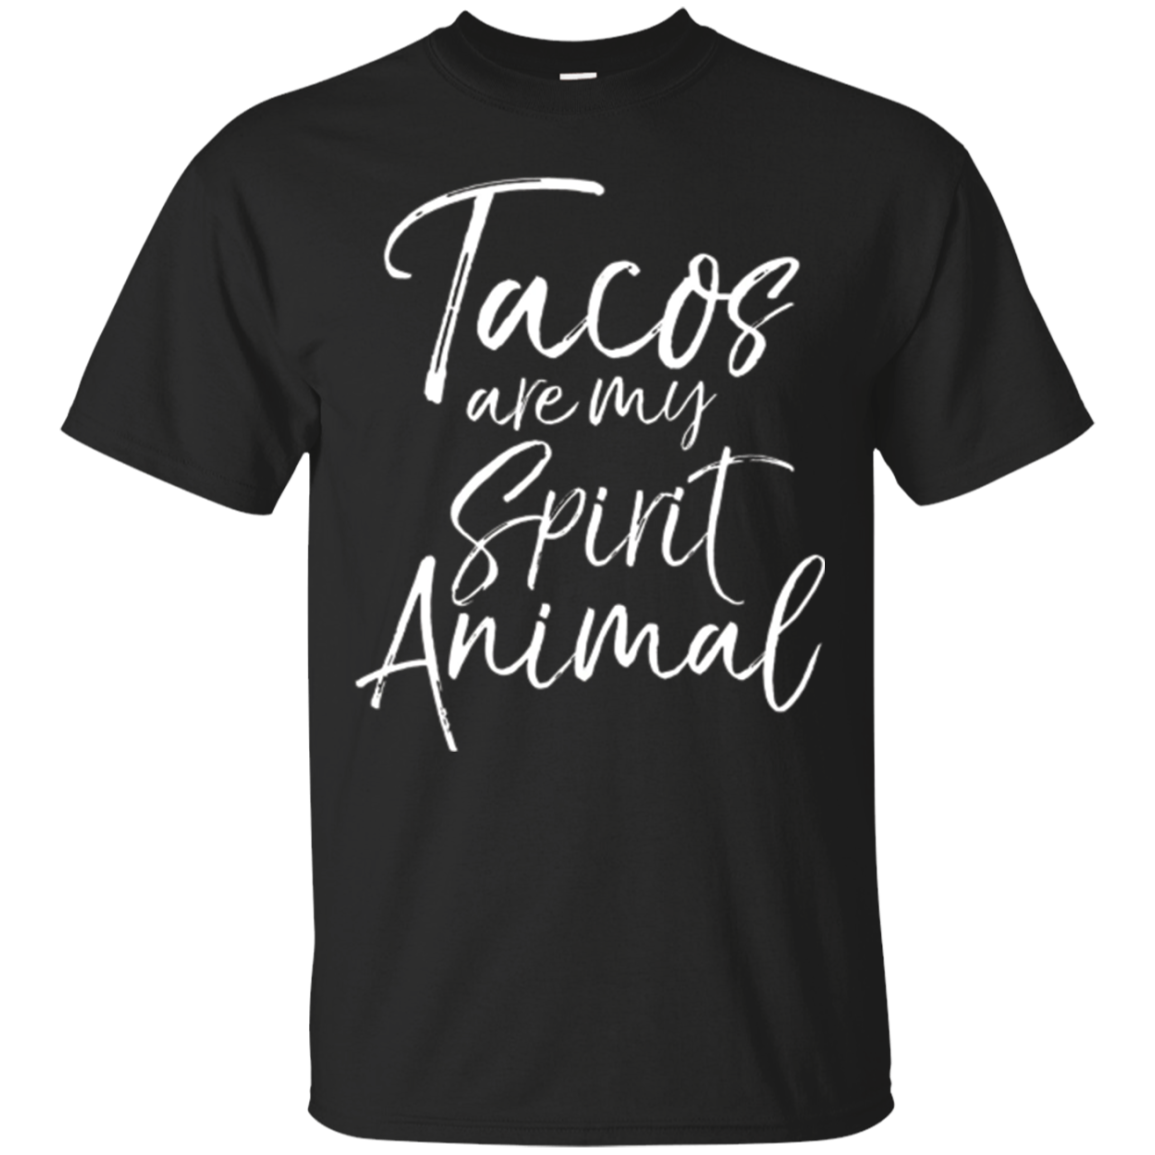 Tacos are my Spirit Animal Shirt Fun Cute Mexican Food Tee